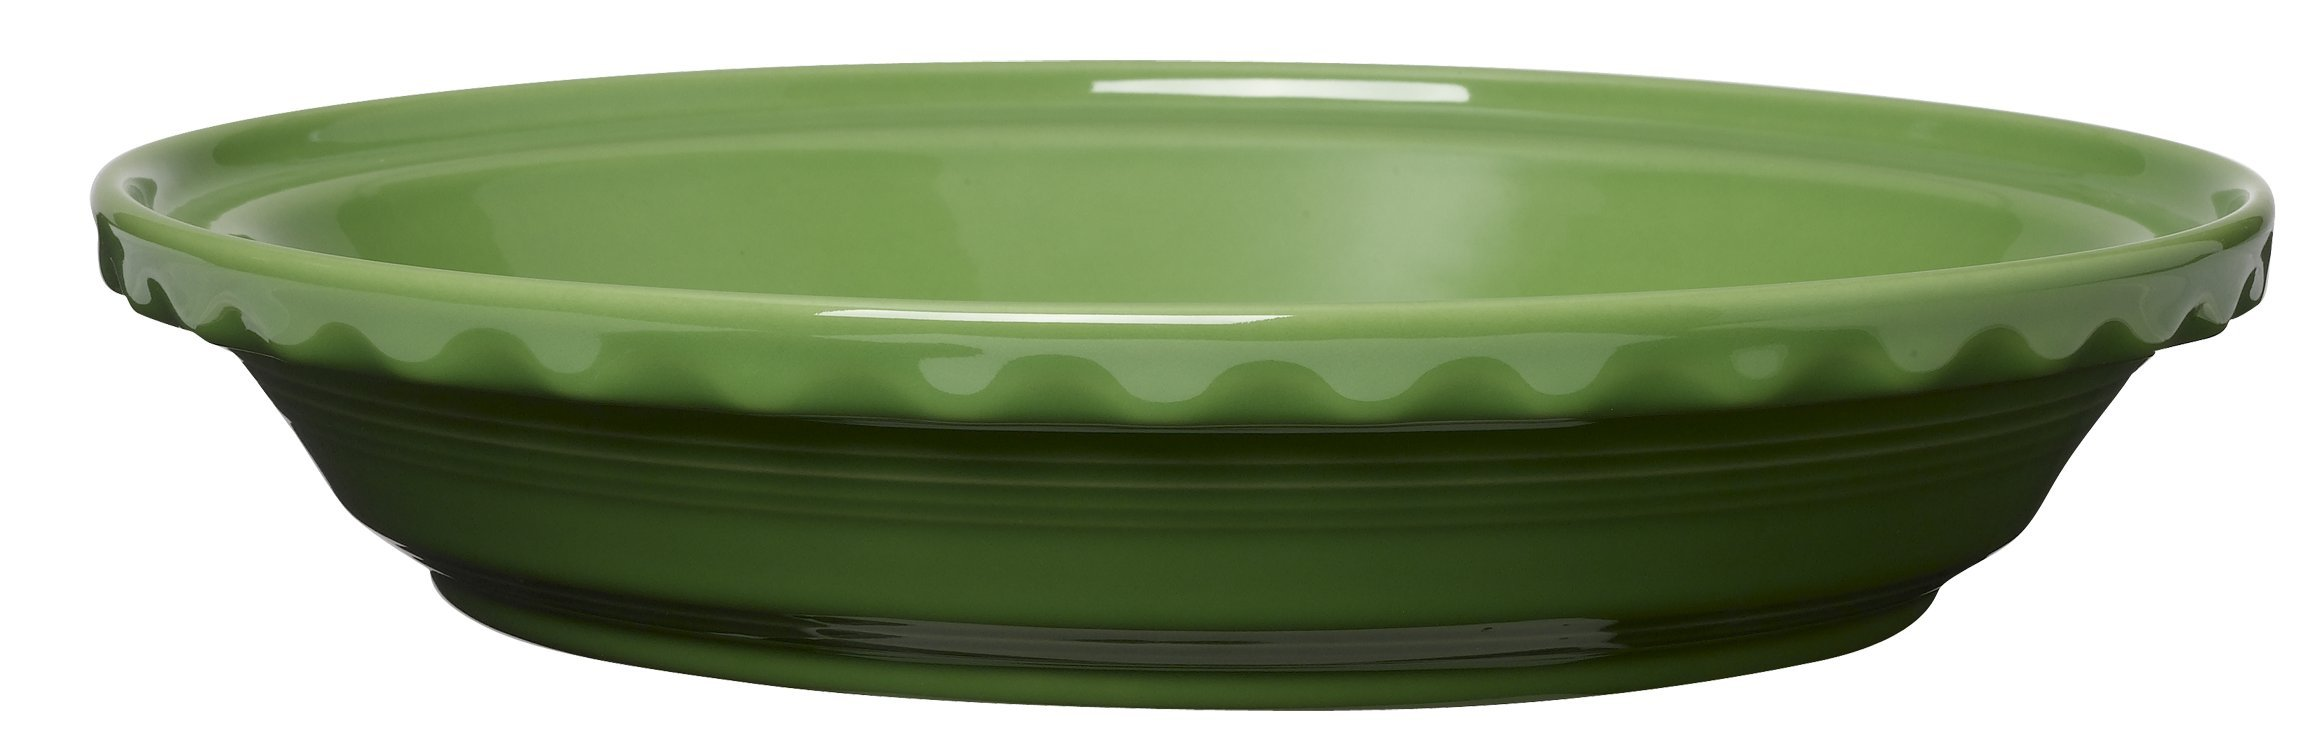 Fiesta 10-1/4-Inch Deep Dish Pie Baker, Shamrock by Homer Laughlin (Image #1)